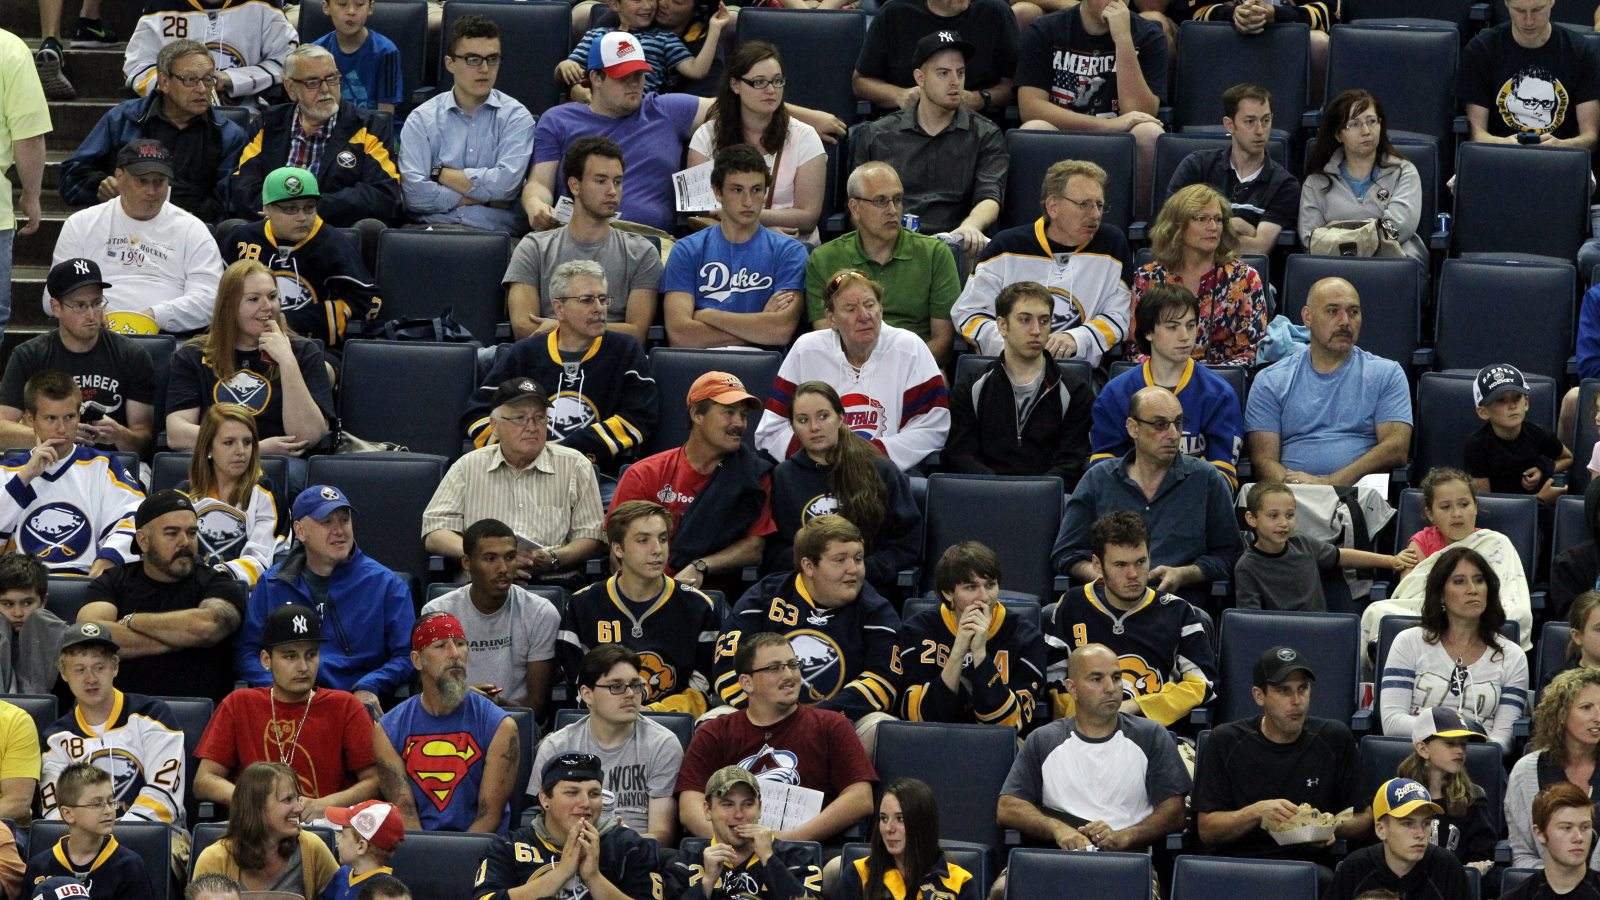 Fans take in a game at KeyBank Center. (James P. McCoy/News file photo)